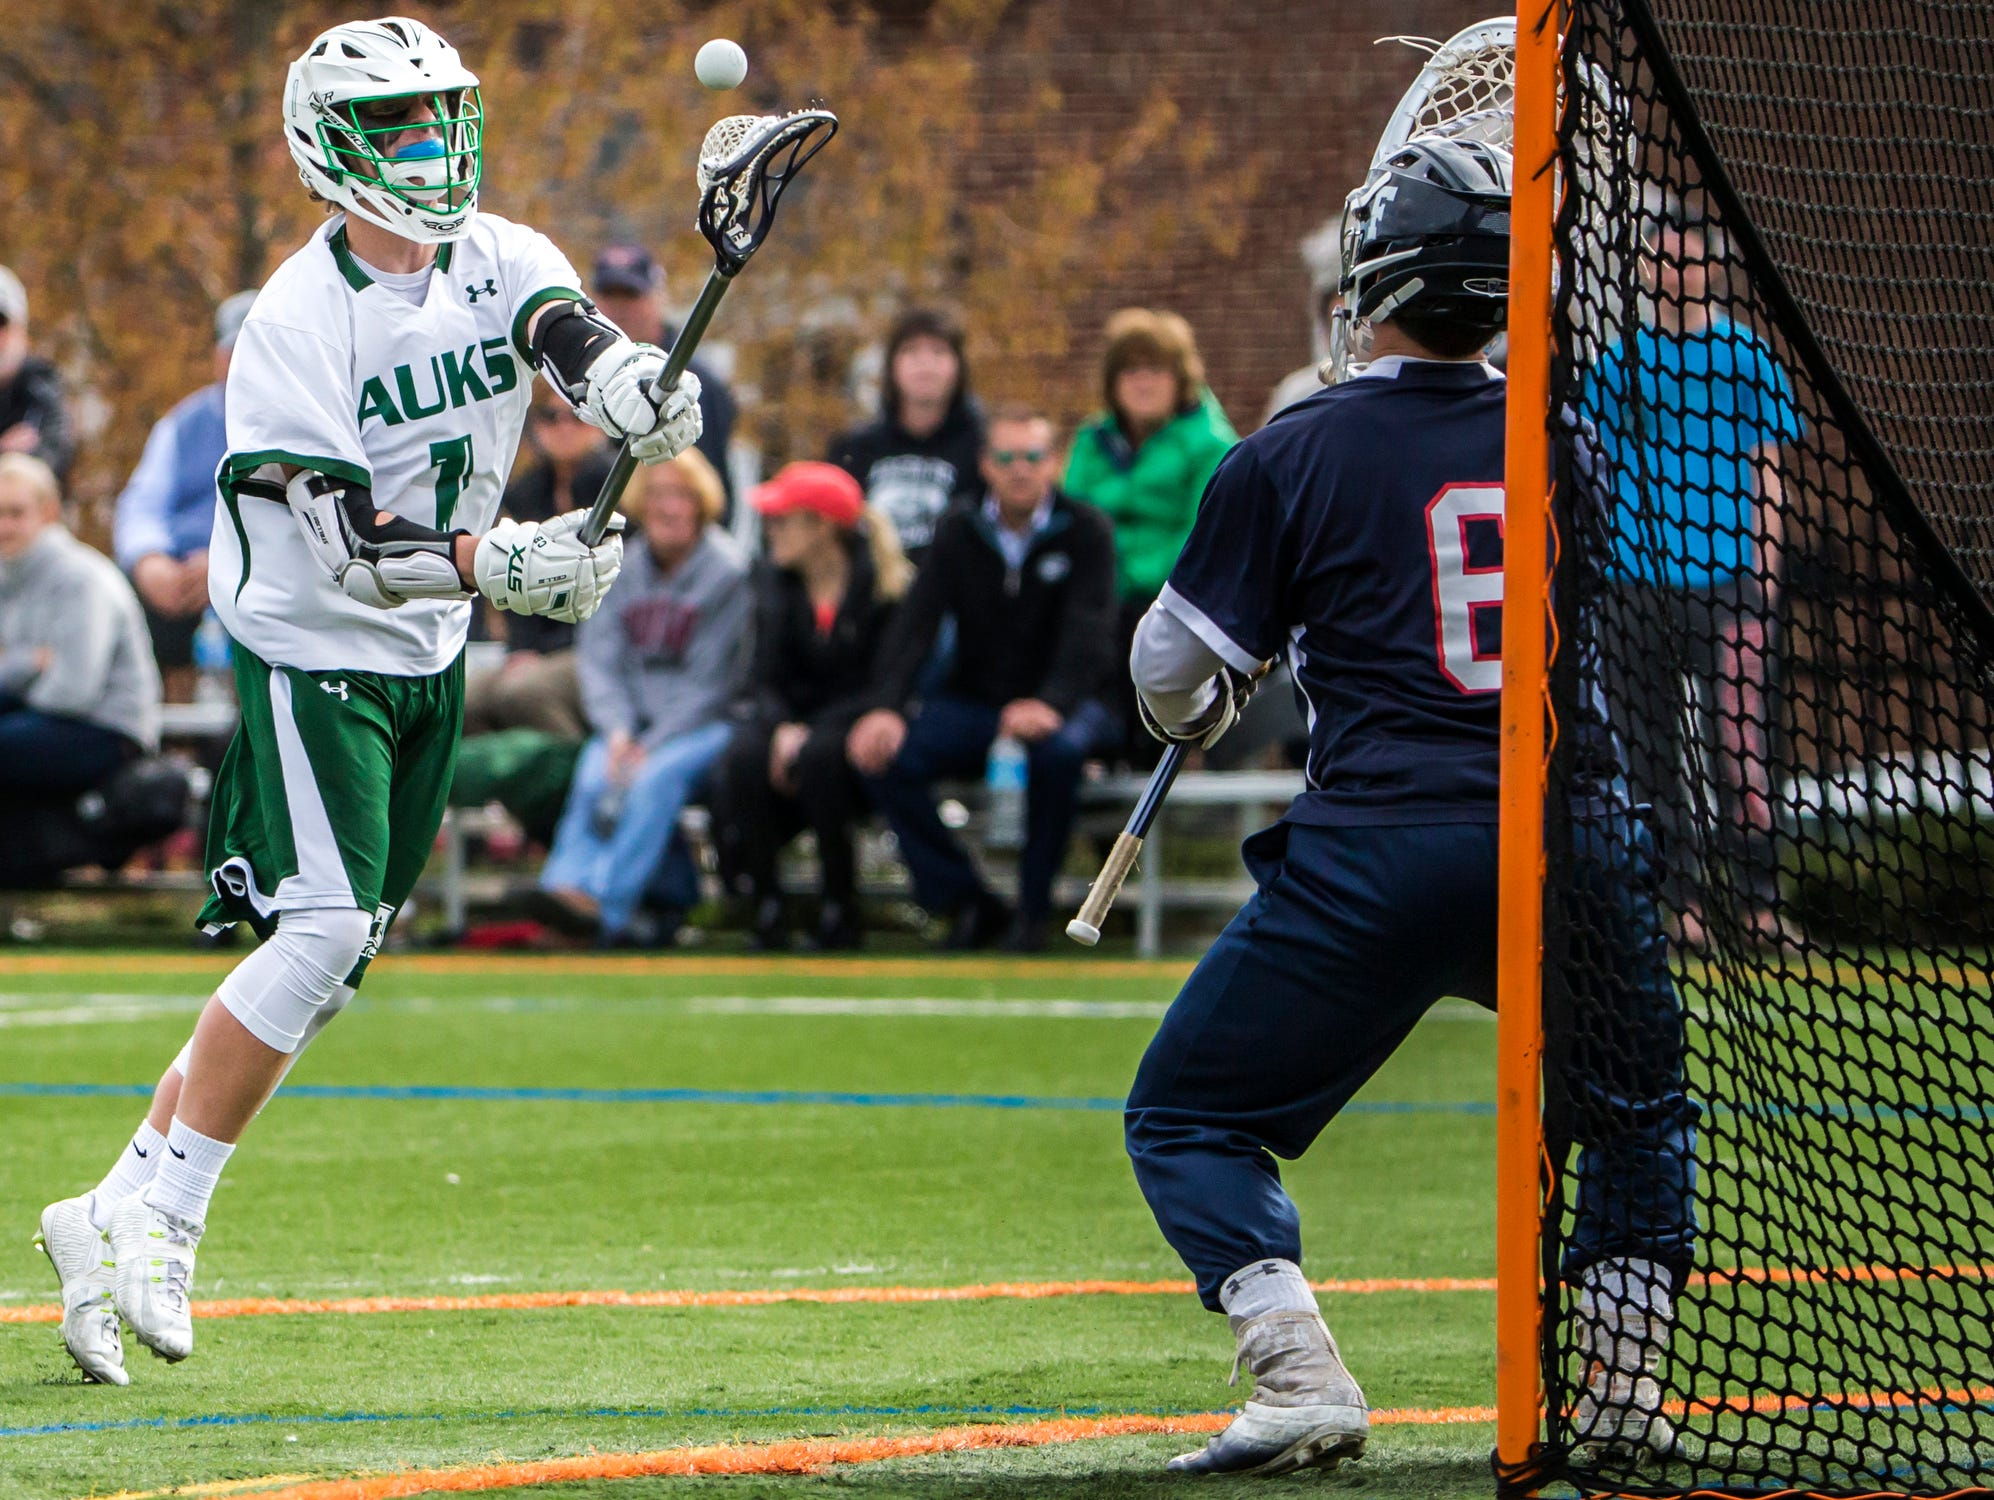 Archmere's Cole Bauer puts a shot on Friends' Jakob Katzen in Archmere Academy's 13-8 win over Wilmington Friends School at Archmere on Thursday afternoon.